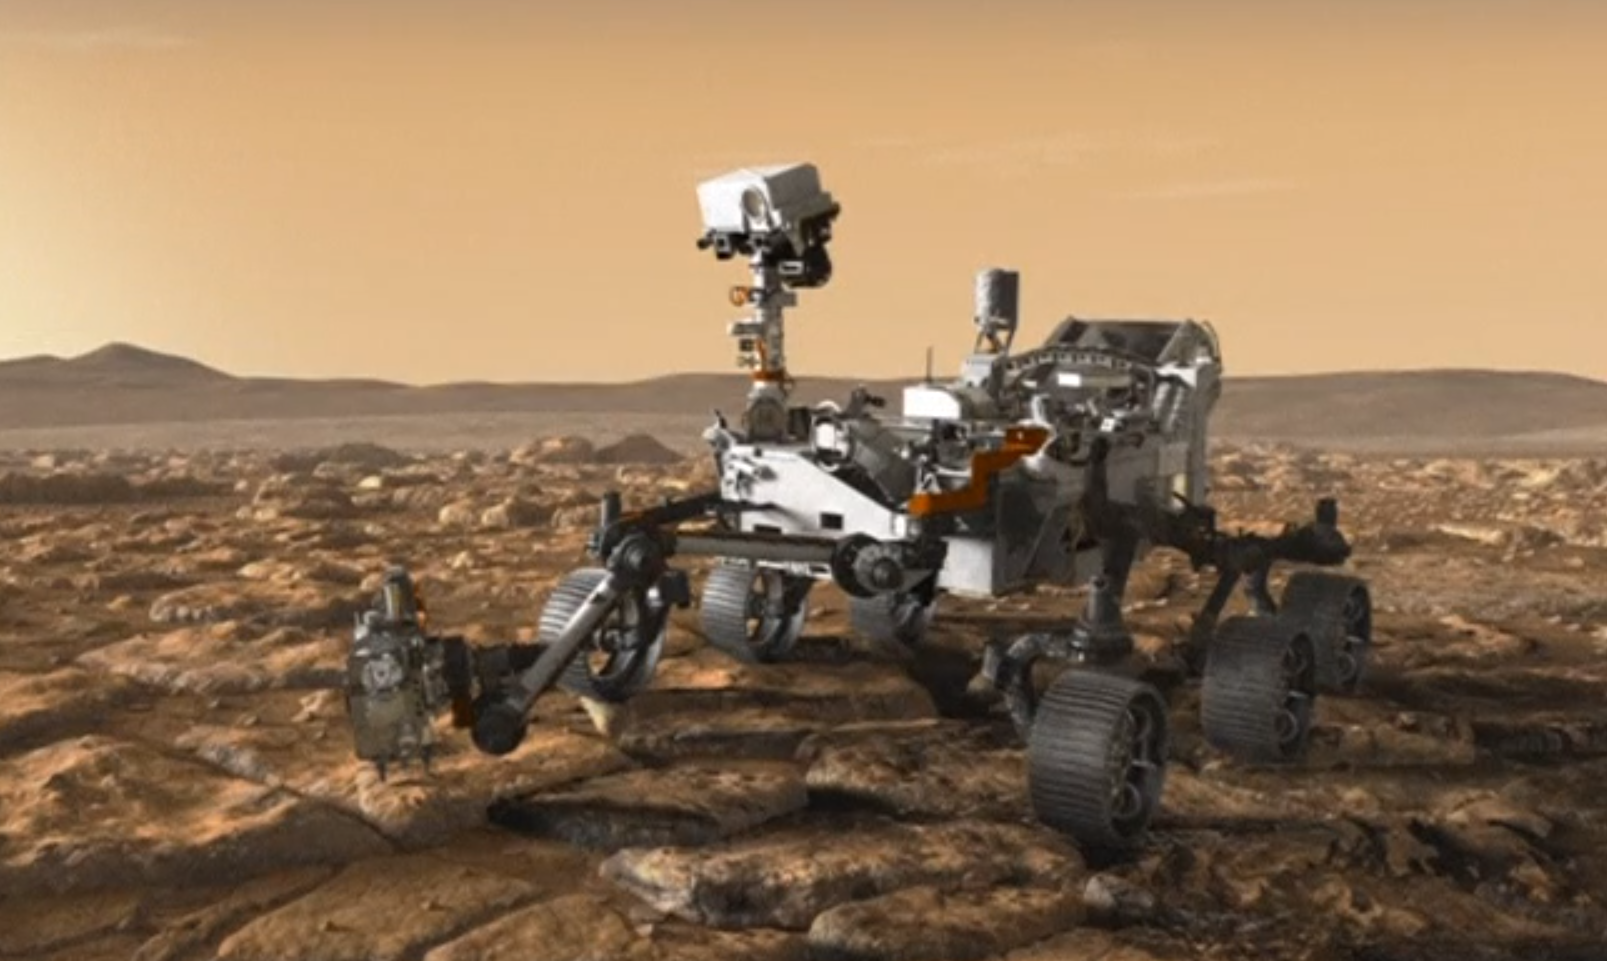 NASA building new rover for Mars 2020 mission